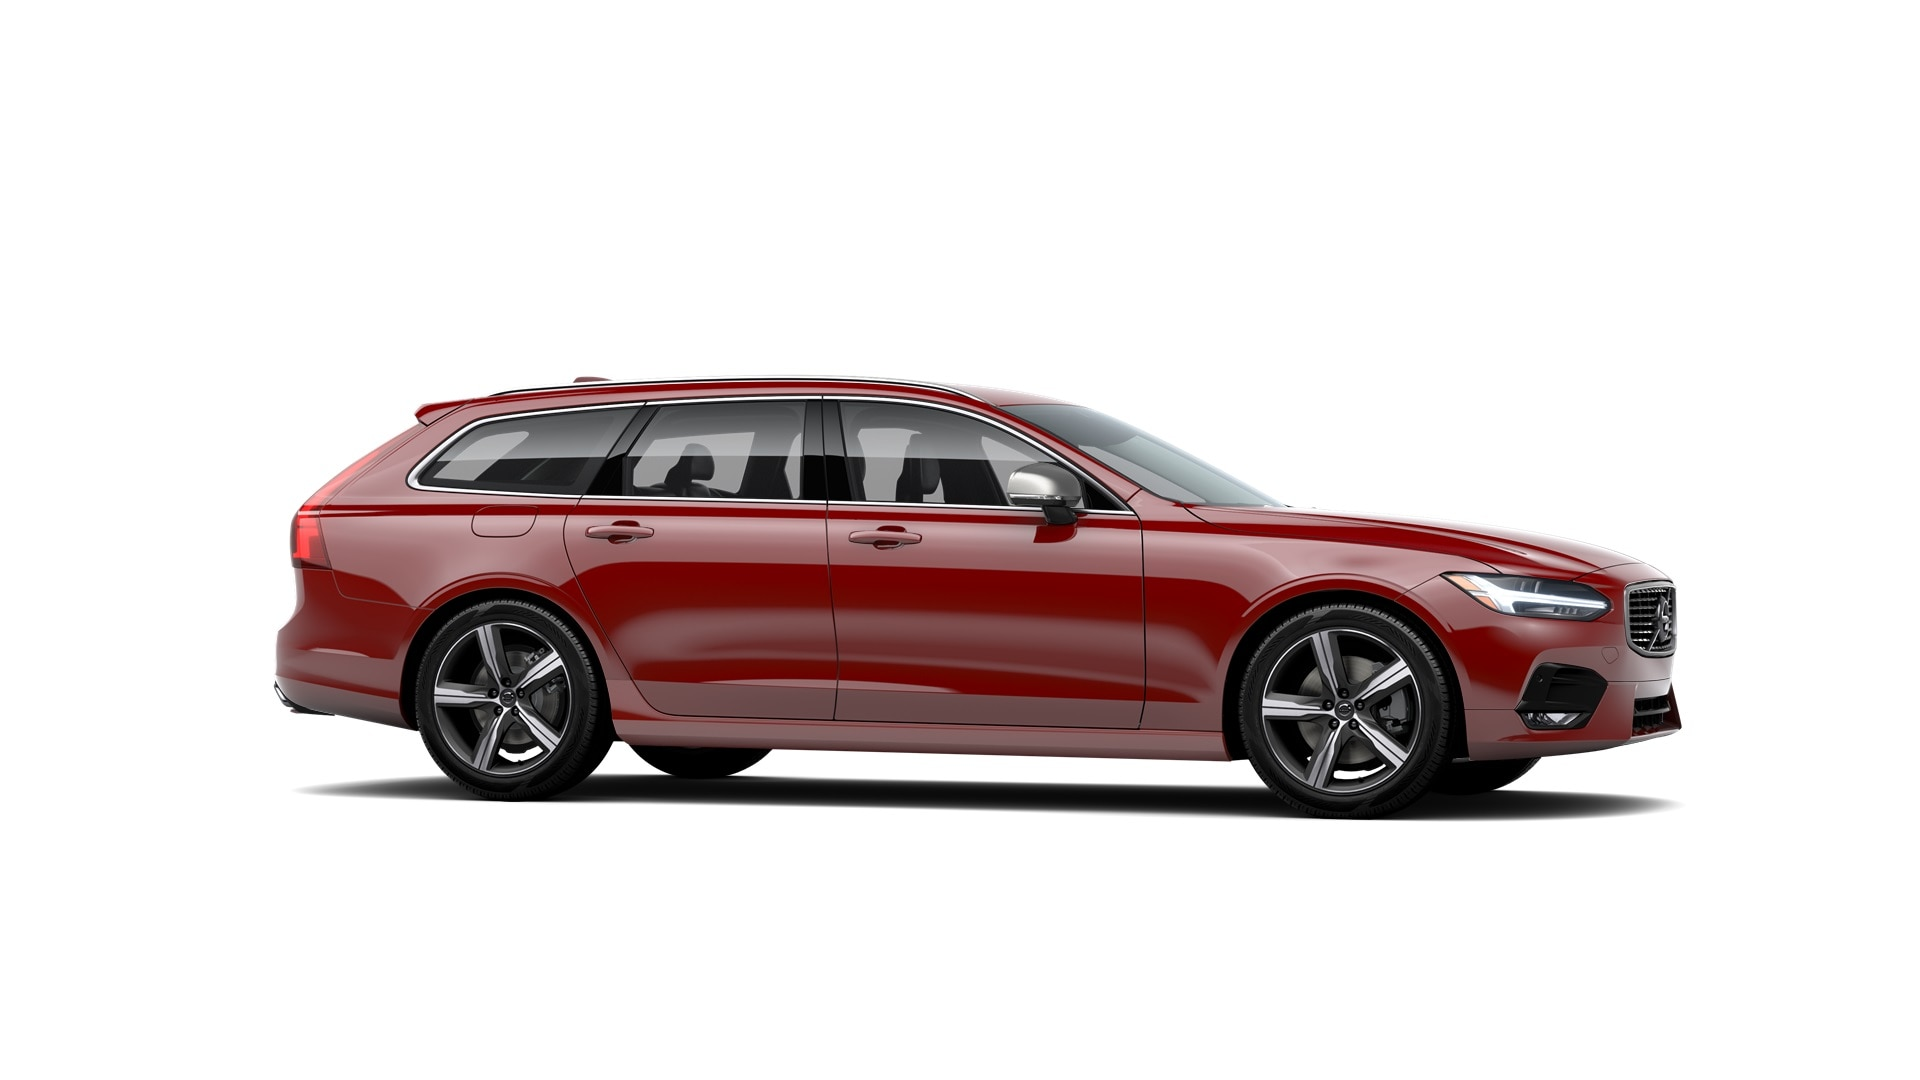 Volvo V90 2019 Rouge passion